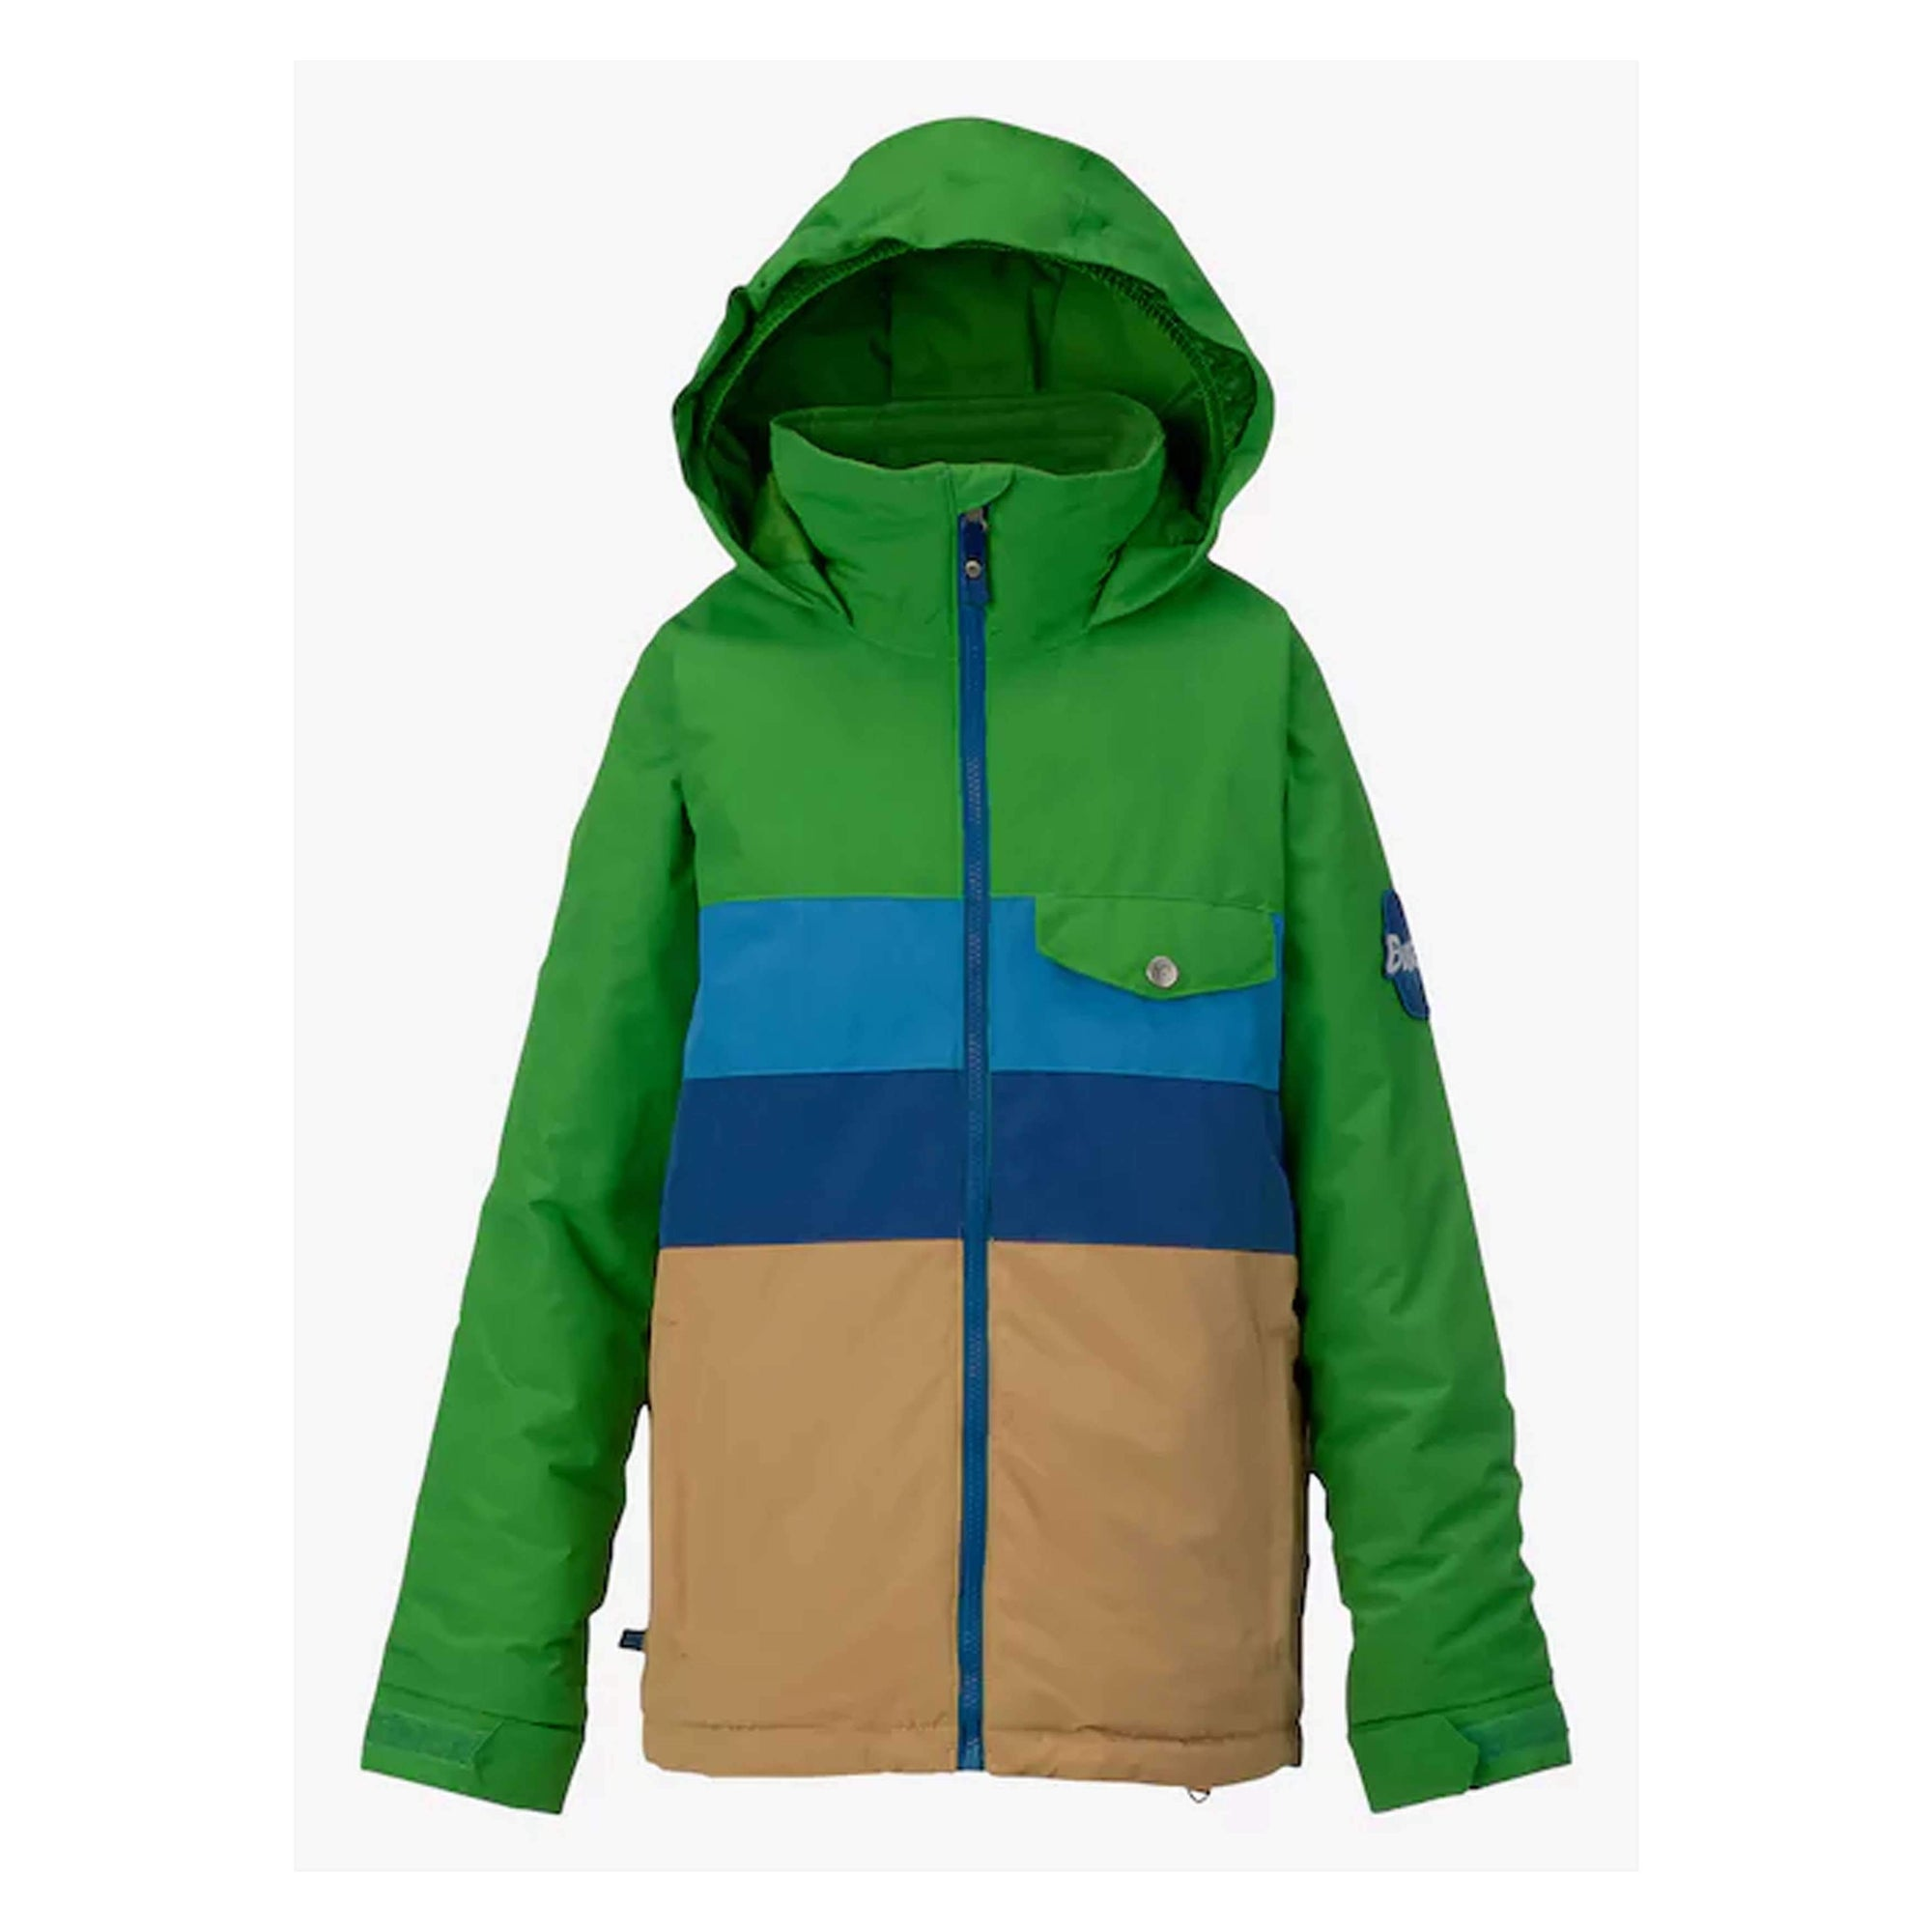 BURTON JACKETS S / SLIME BLOCK(361) / KIDS BOYS BURTON OL 2017 JACKET BOYS SYBURTON OL 2017 JACKET